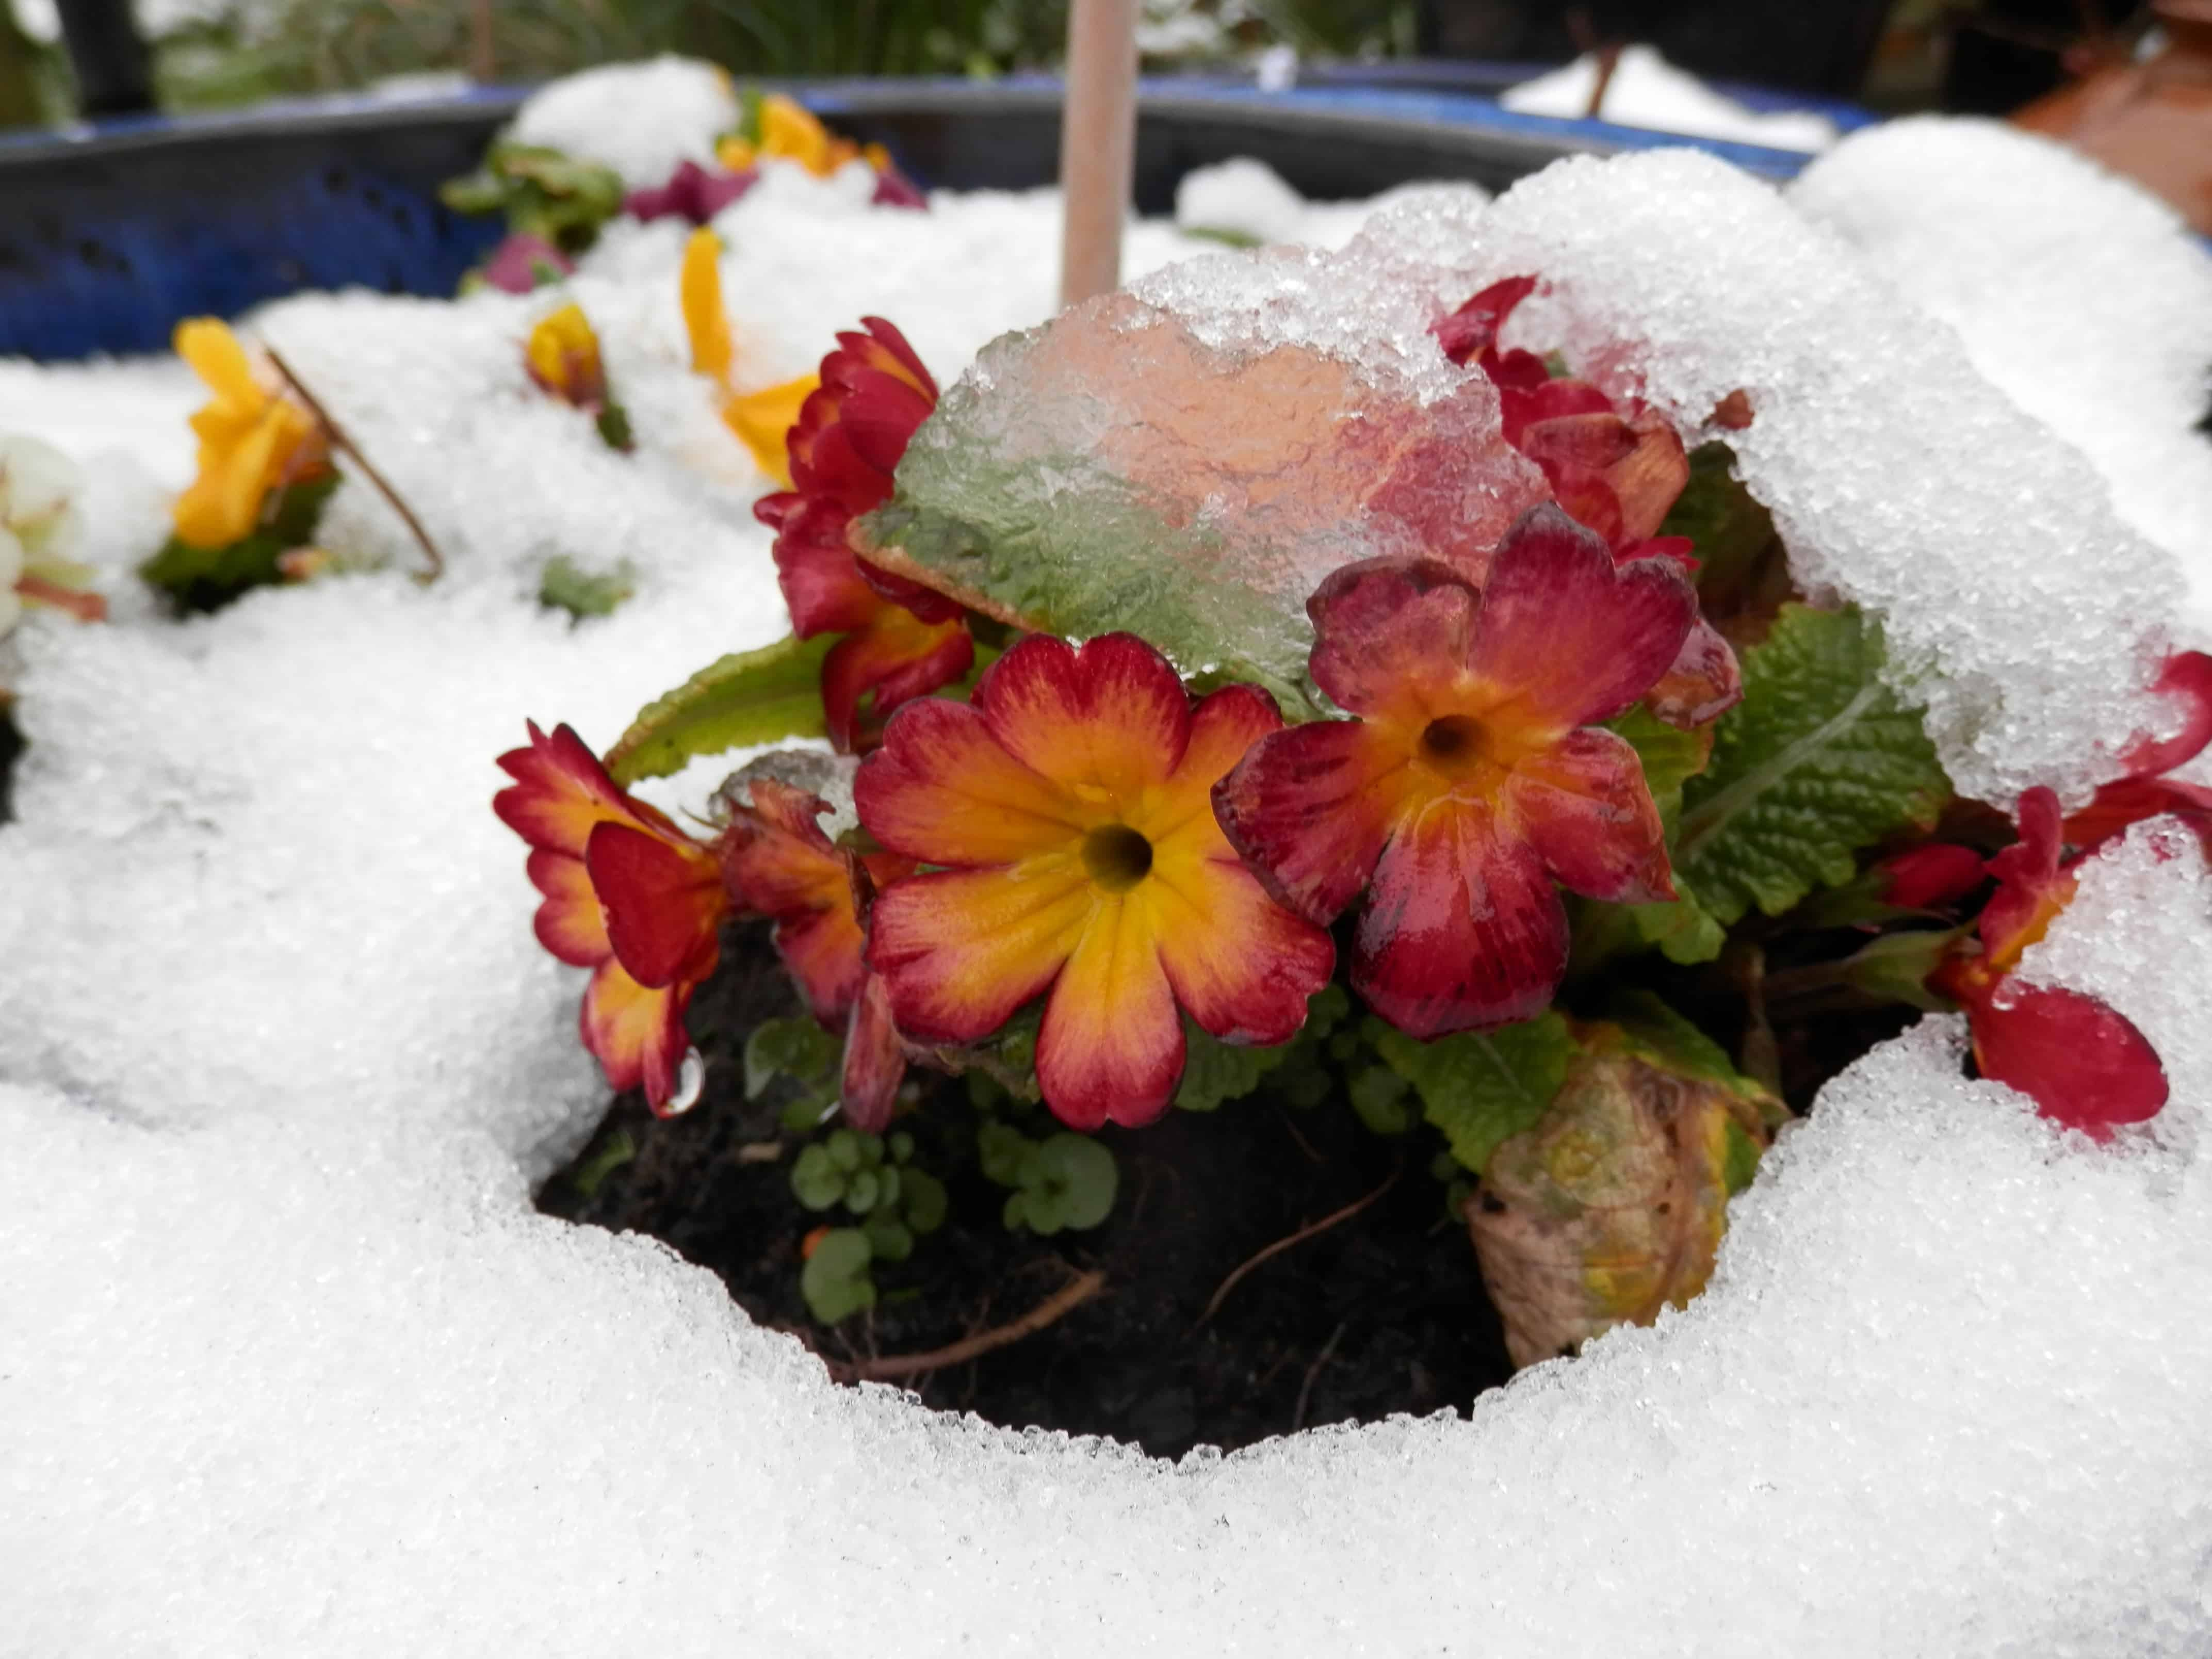 Late snow frames the bright polyanthus, shortly to herald Spring